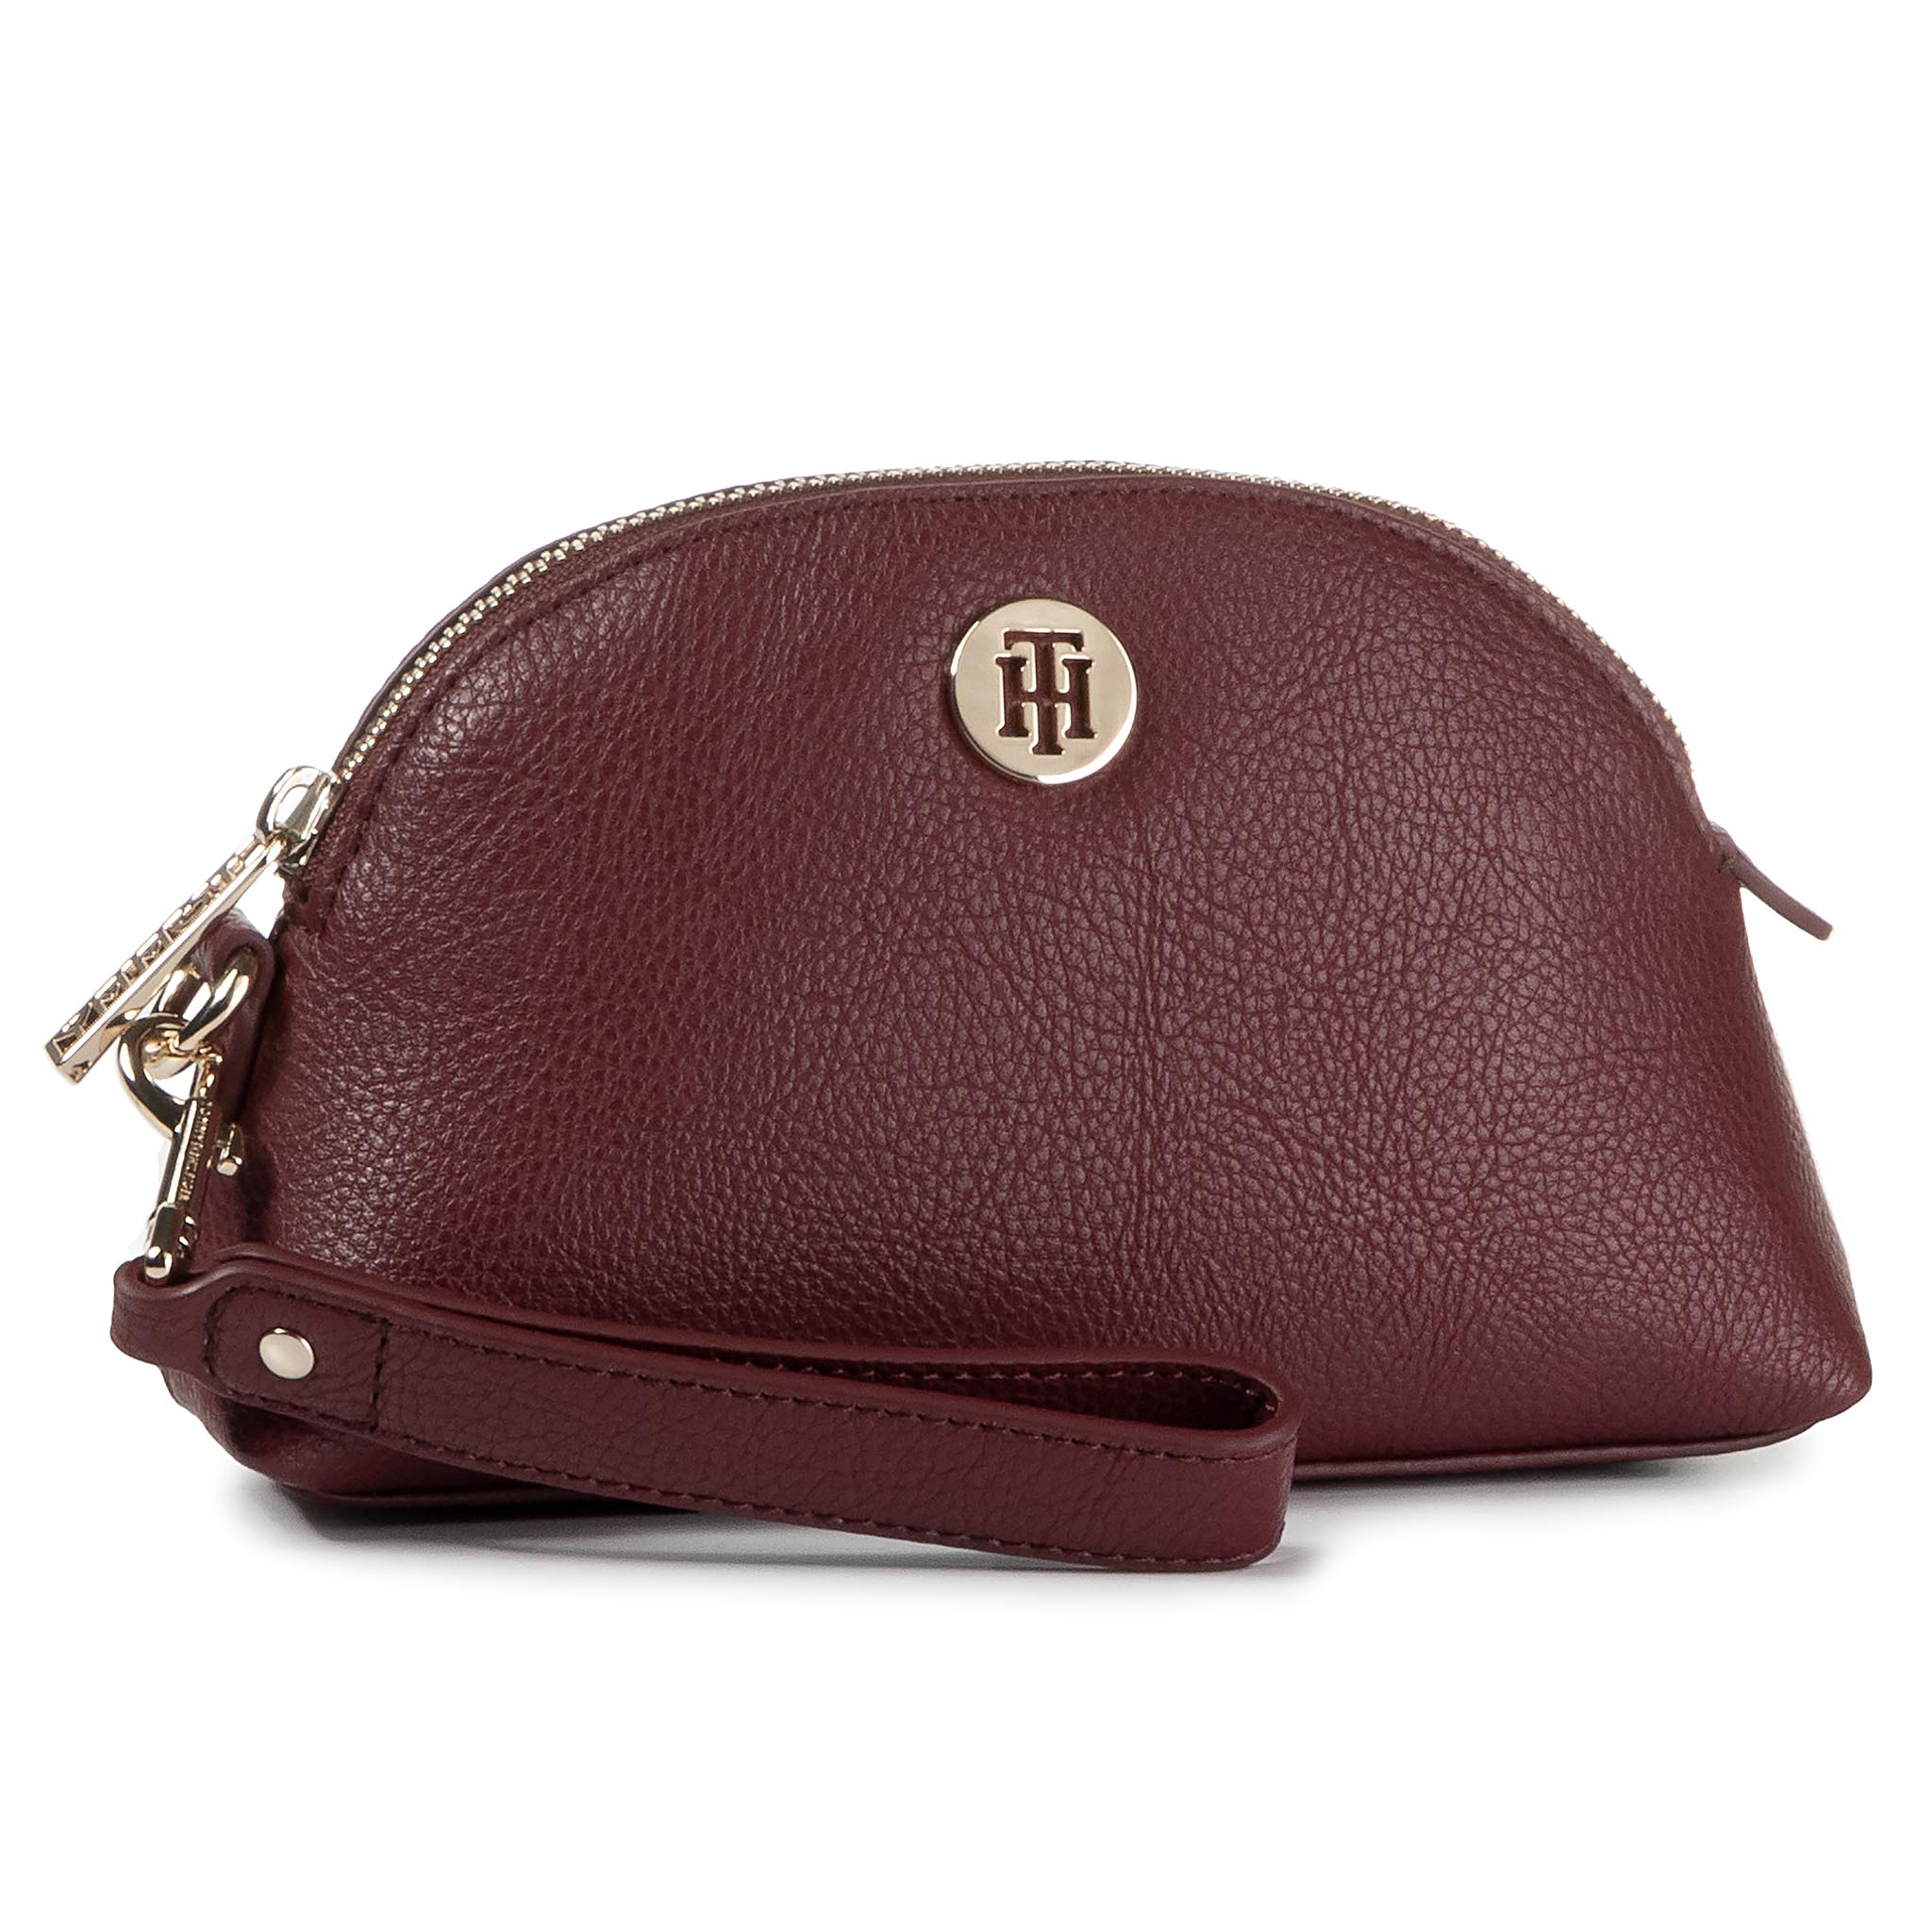 Geantă Pentru Cosmetice Tommy Hilfiger - Th Core Washbag Aw0aw07365 Gbh imagine epantofi.ro 2021